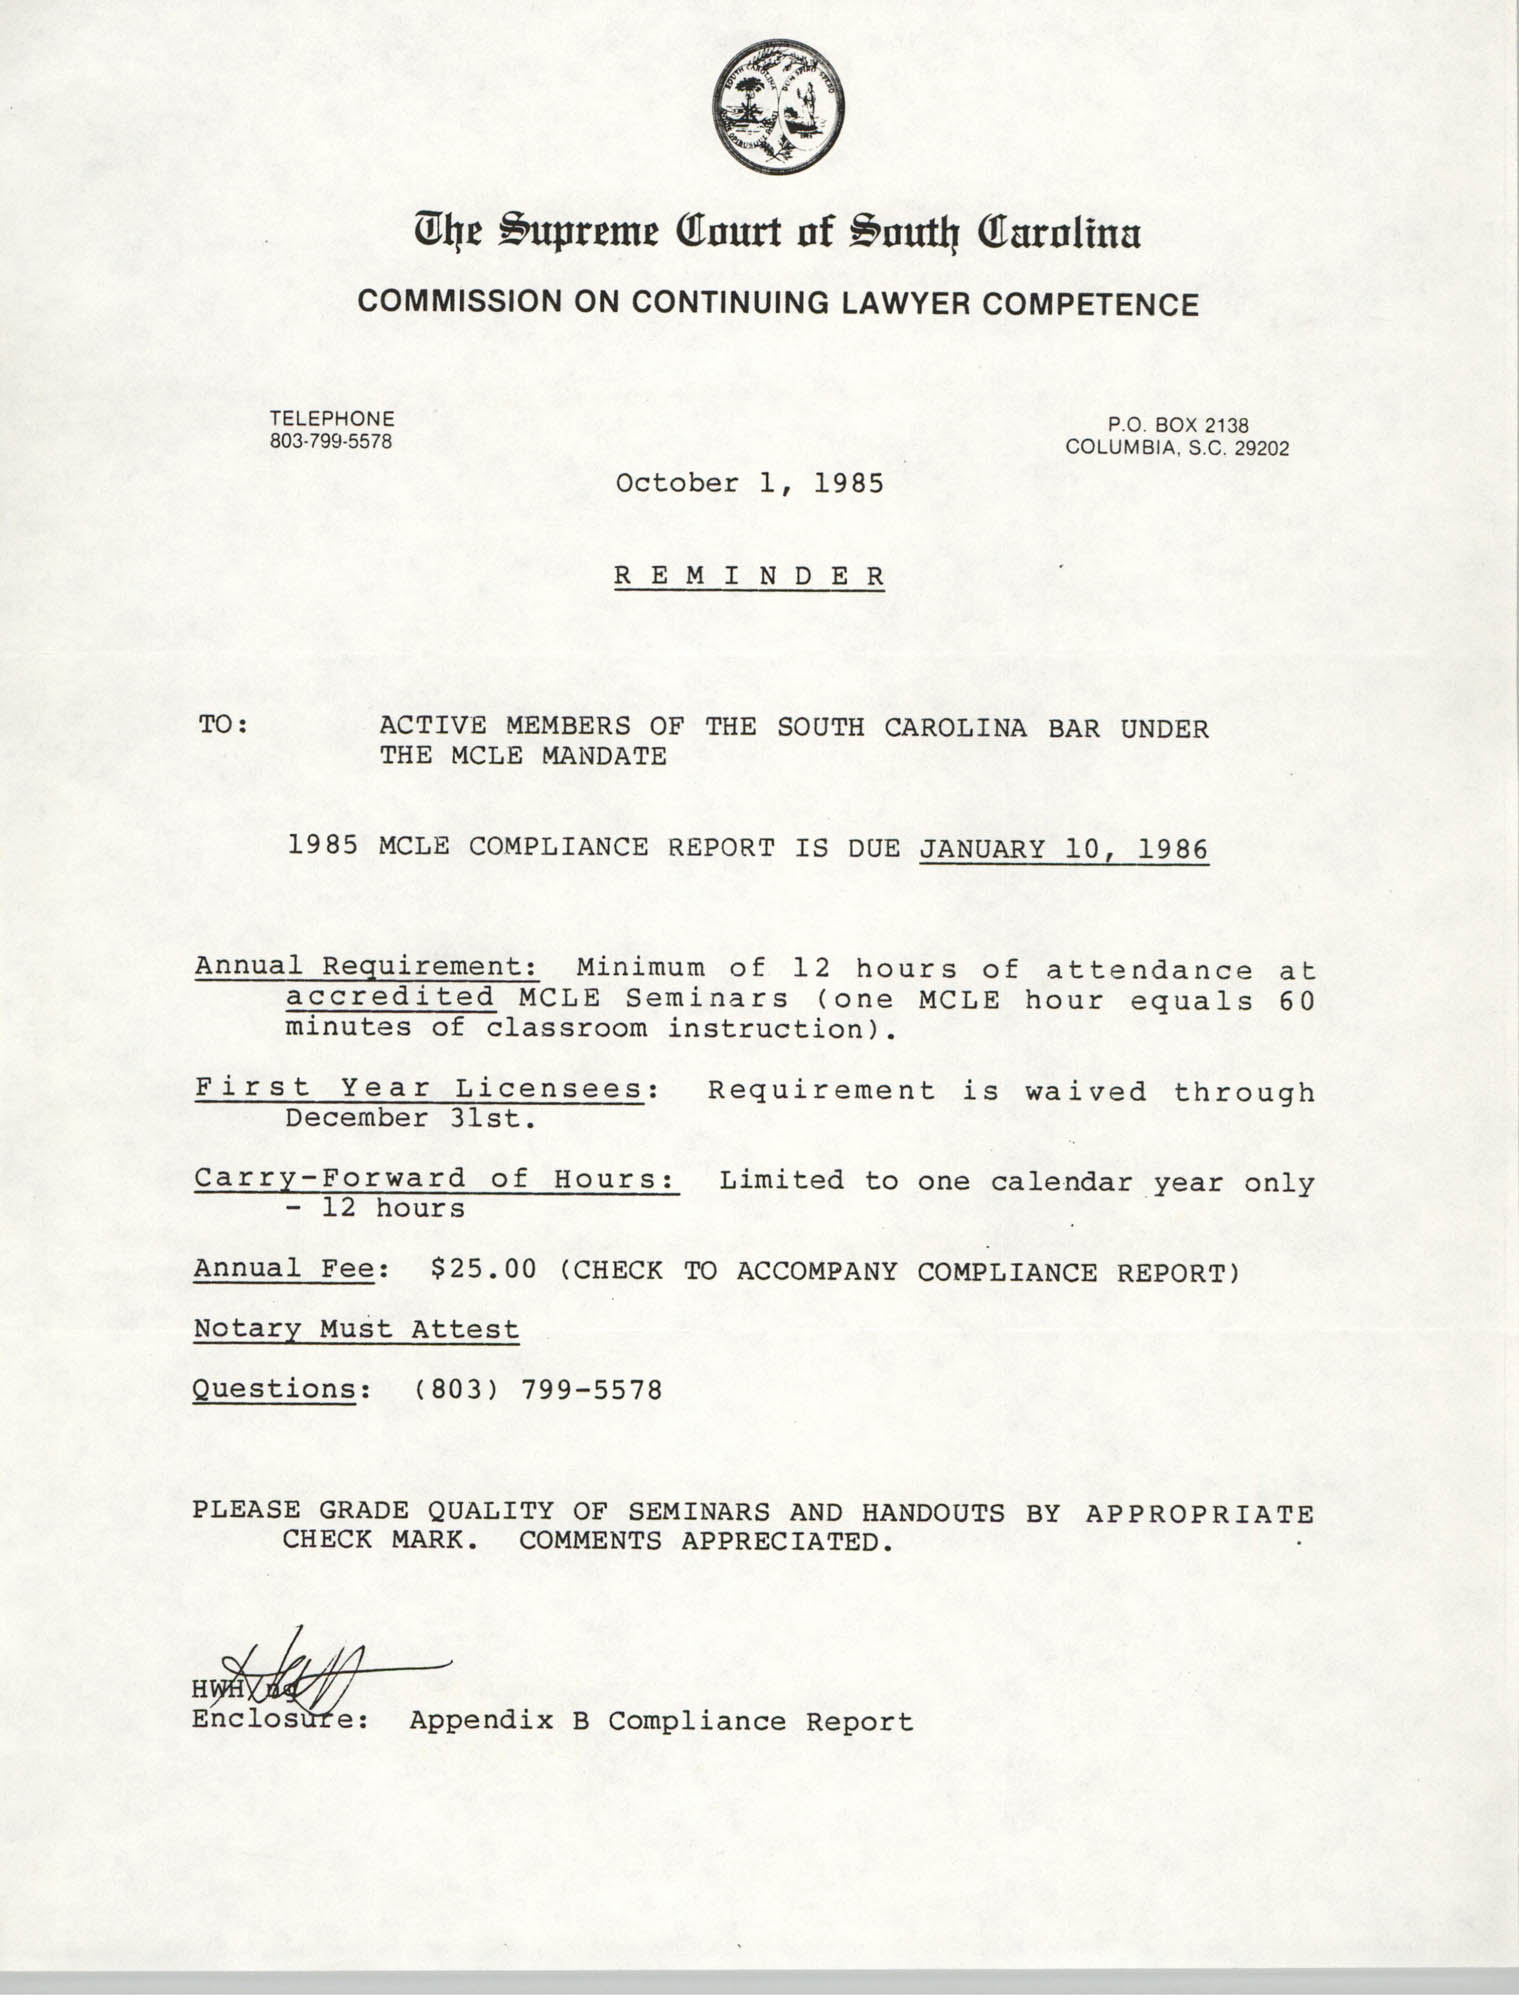 Letter from the Supreme Court of South Carolina, Commission on Continuing Lawyer Competence to Active Members of the South Carolina Bar under the MCLE Mandate, October 1, 1985